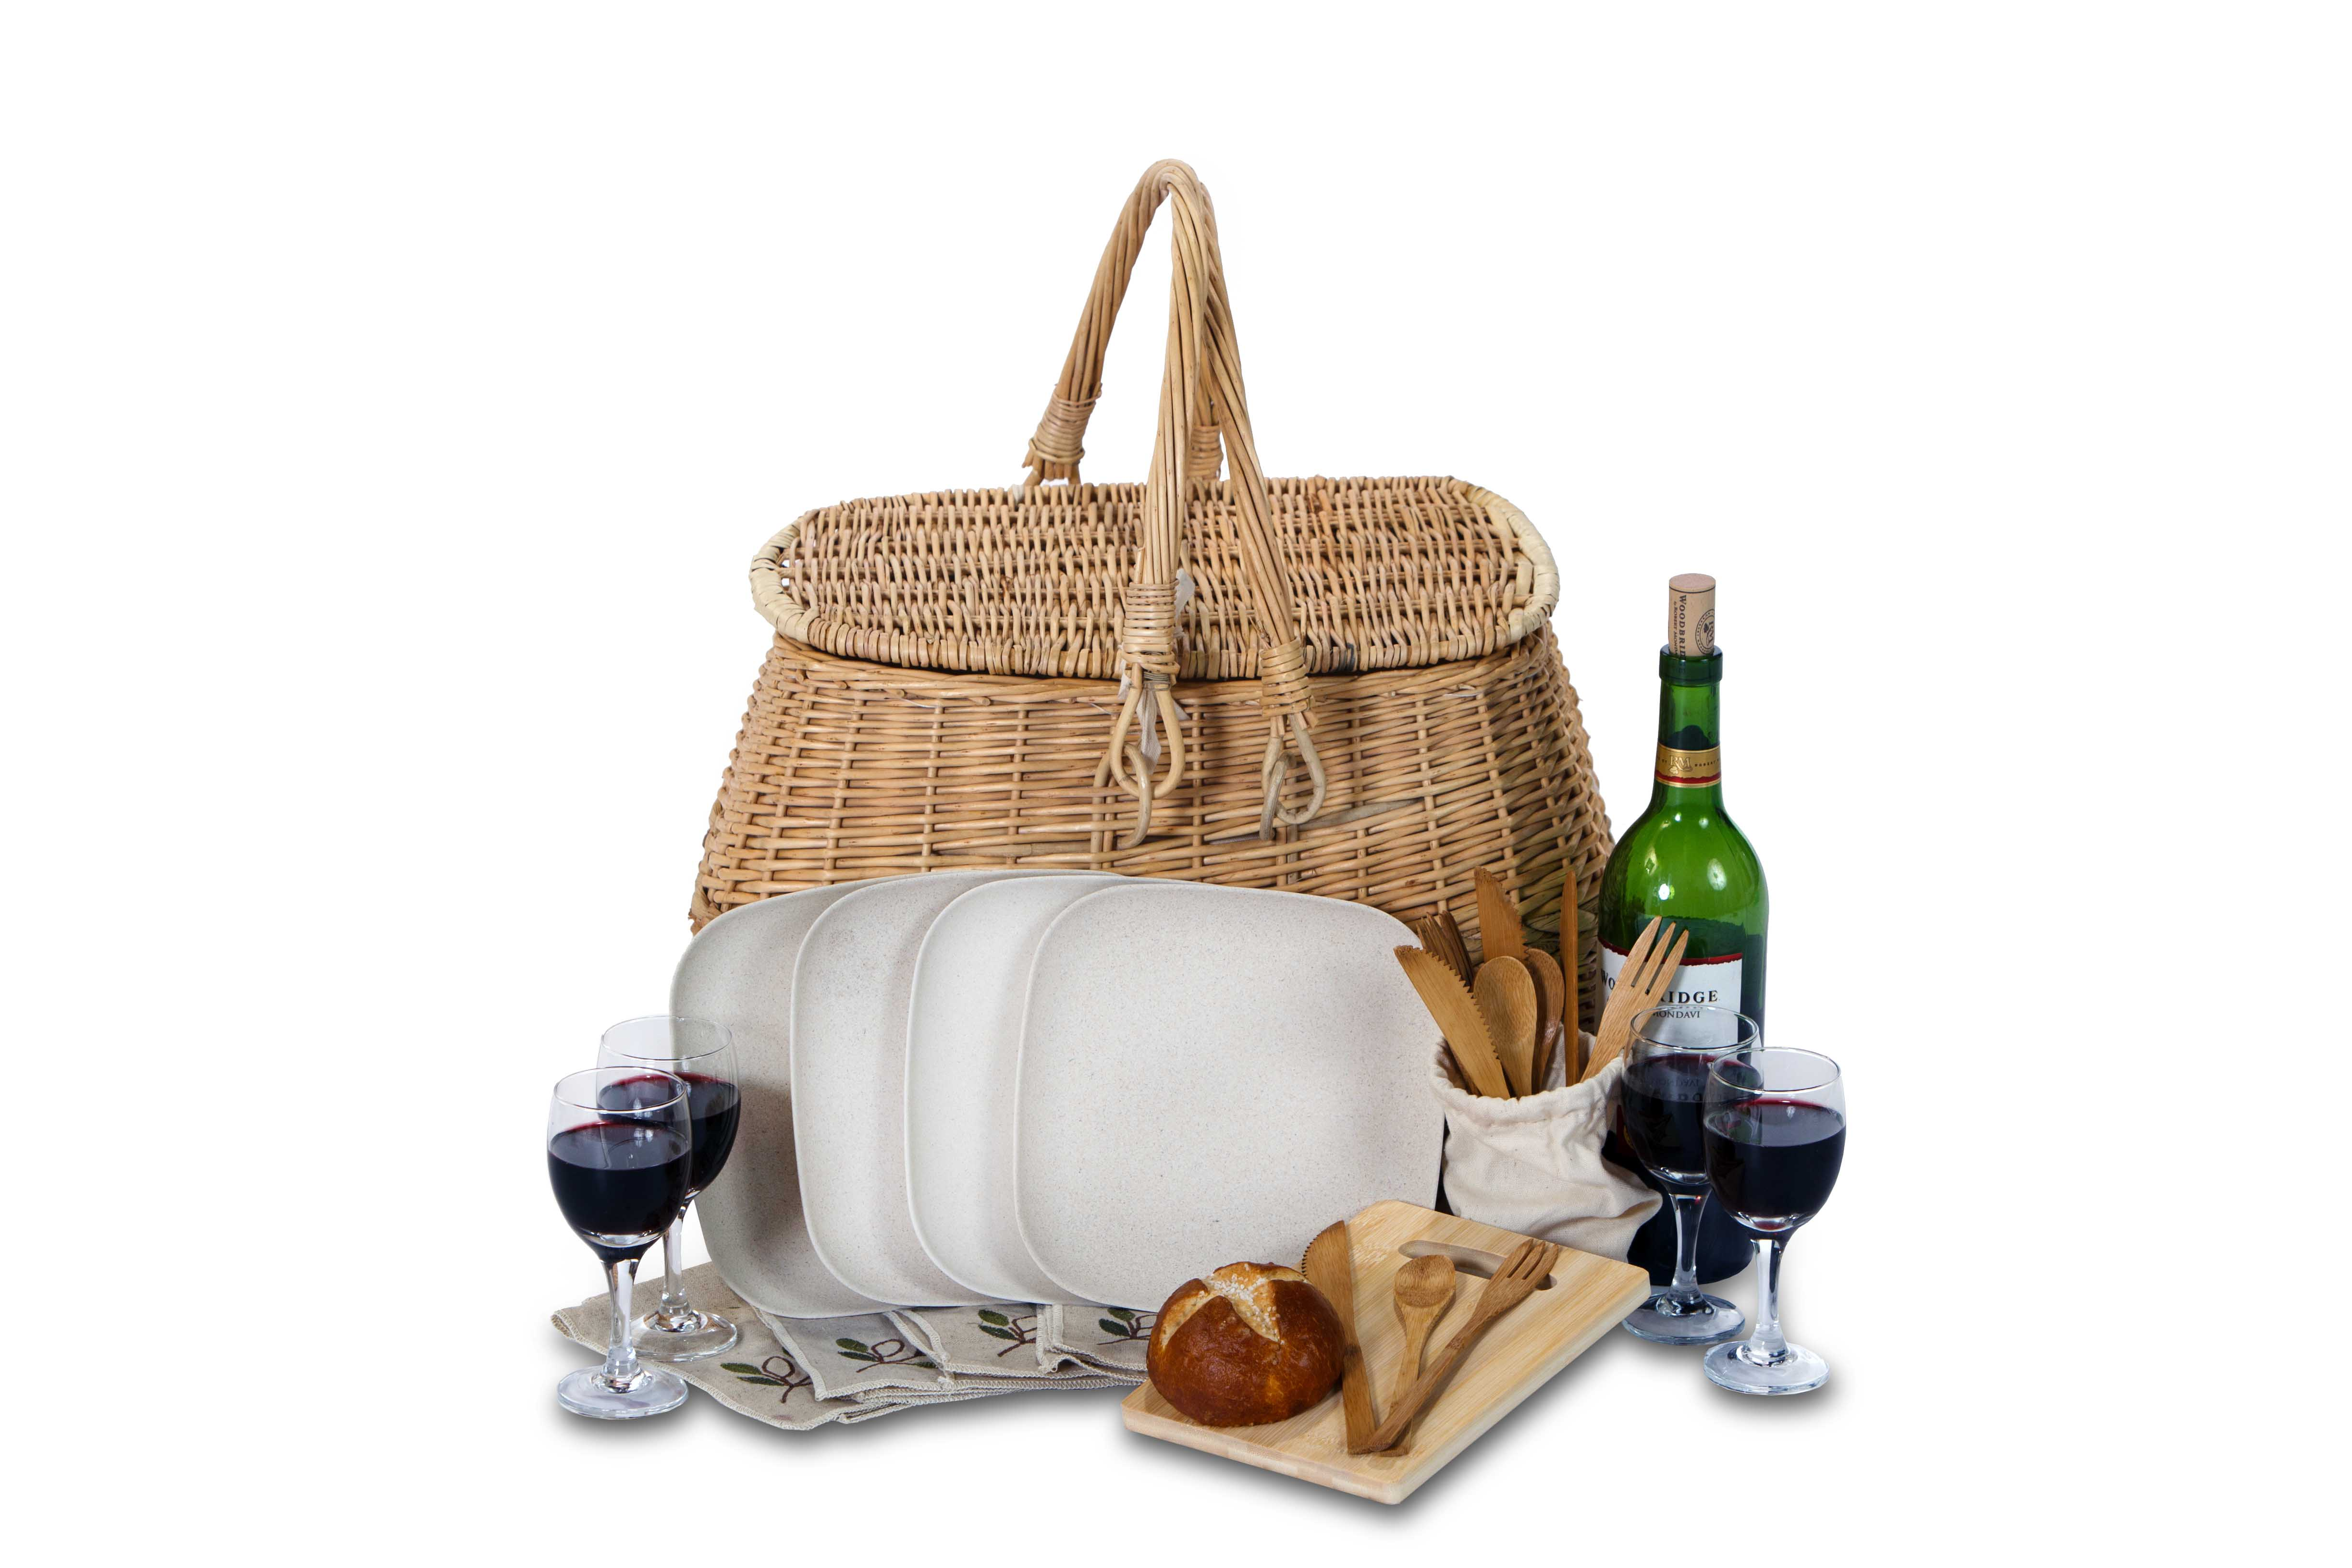 eco 4 - Stone Lining - 4 Person Picnic Basket